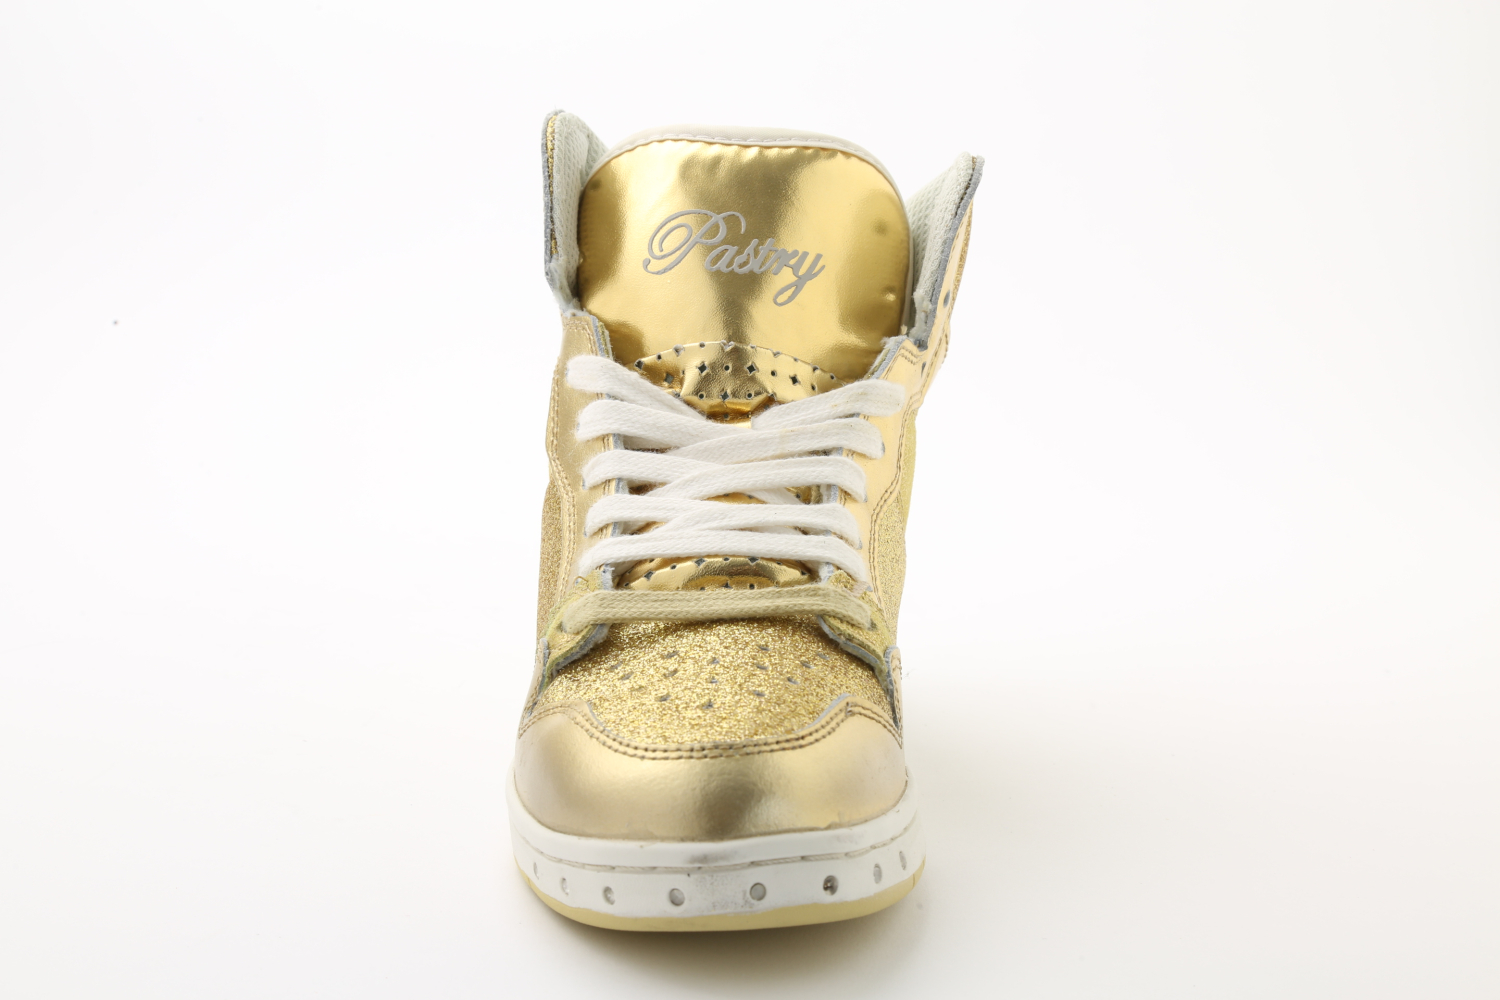 Pastry Adult Glam Pie Glitter Sneaker Gold